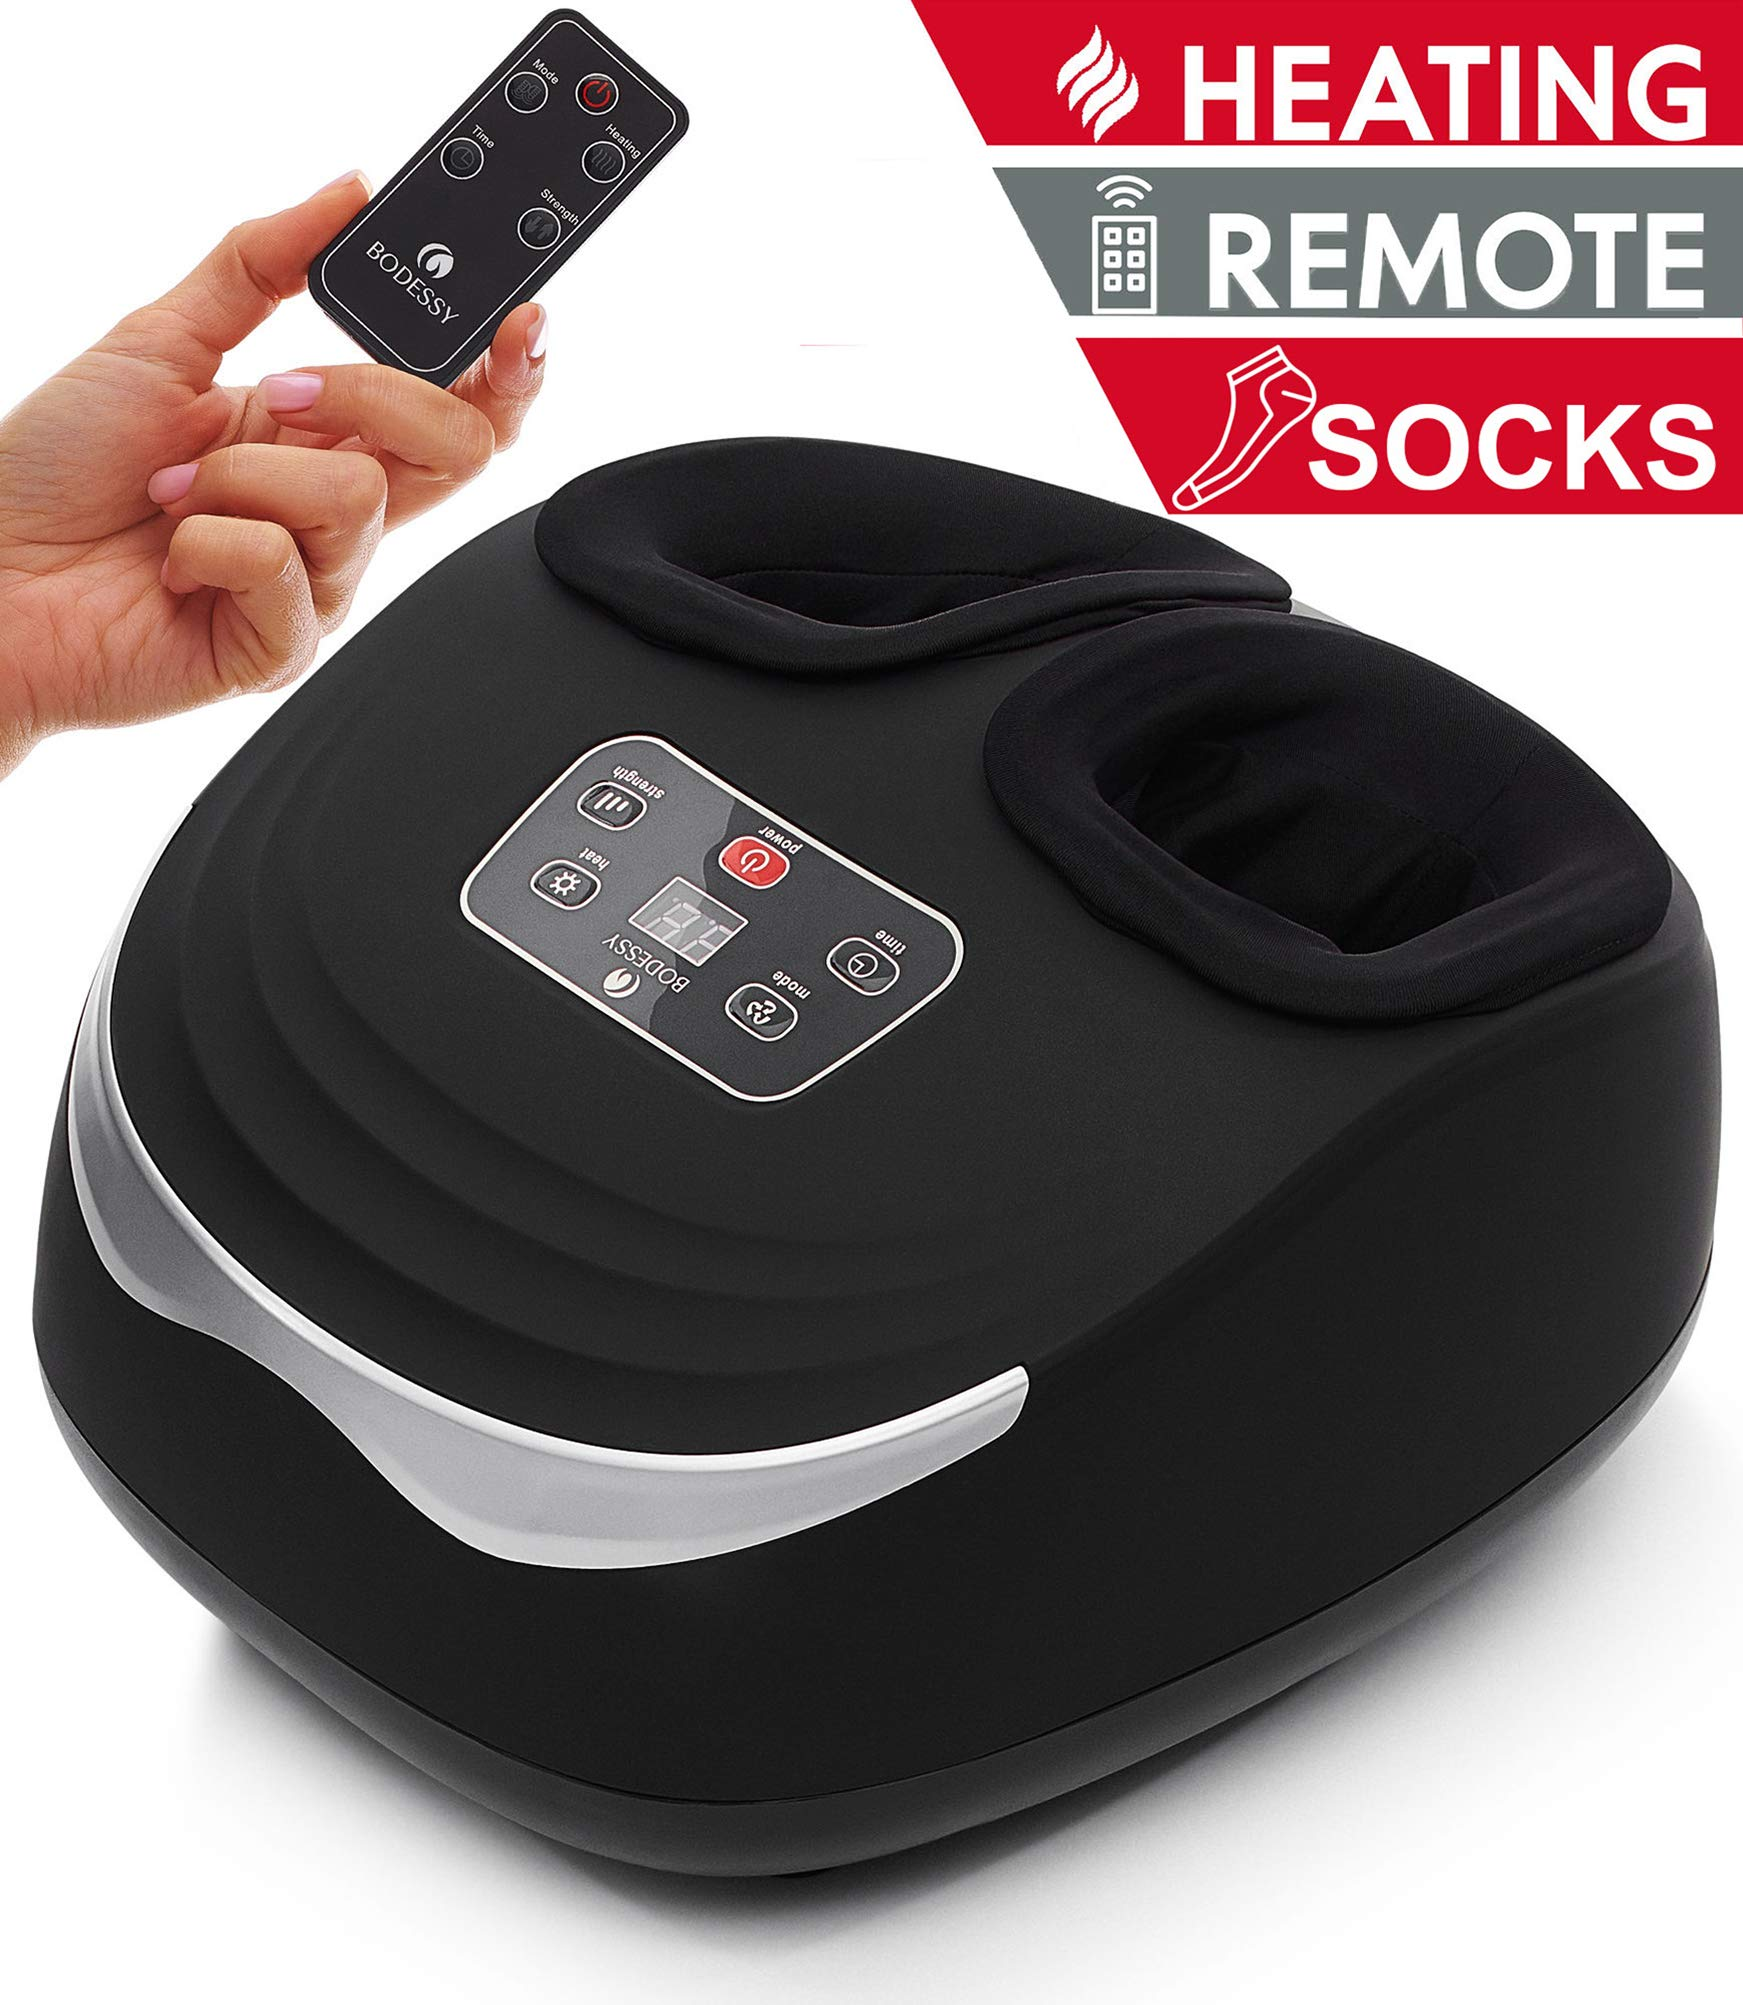 Shiatsu Foot Massager Machine with Heat - Electric Feet Massager Plantar Fasciitis Air Compression Deep Kneading Foot Massages for Neuropathy Muscle Relief Nerve Pain Therapy Spa